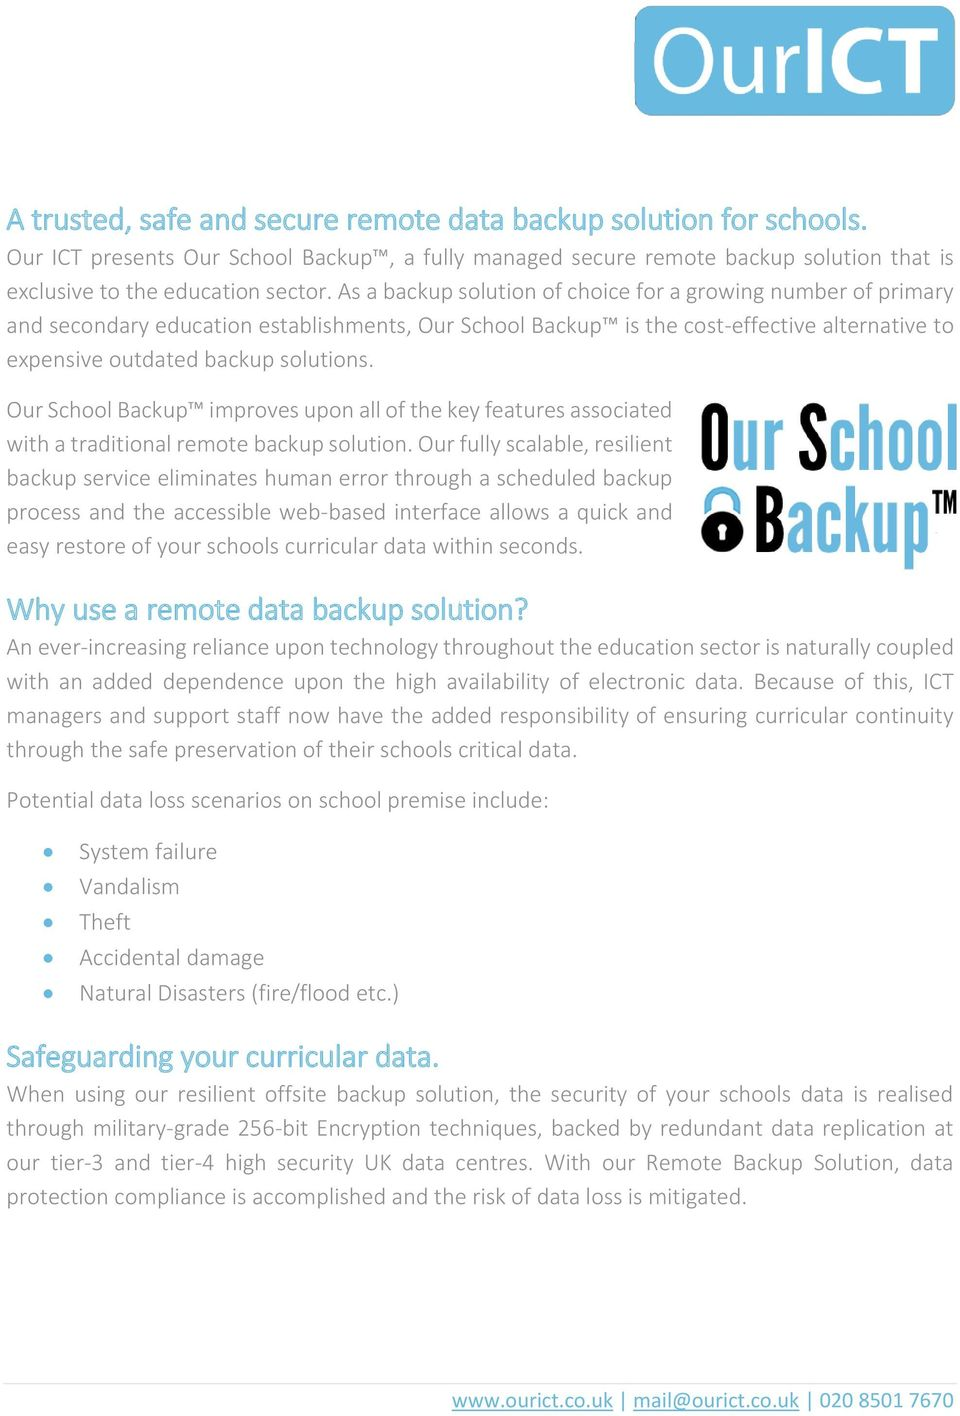 Our School Backup improves upon all of the key features associated with a traditional remote backup solution.